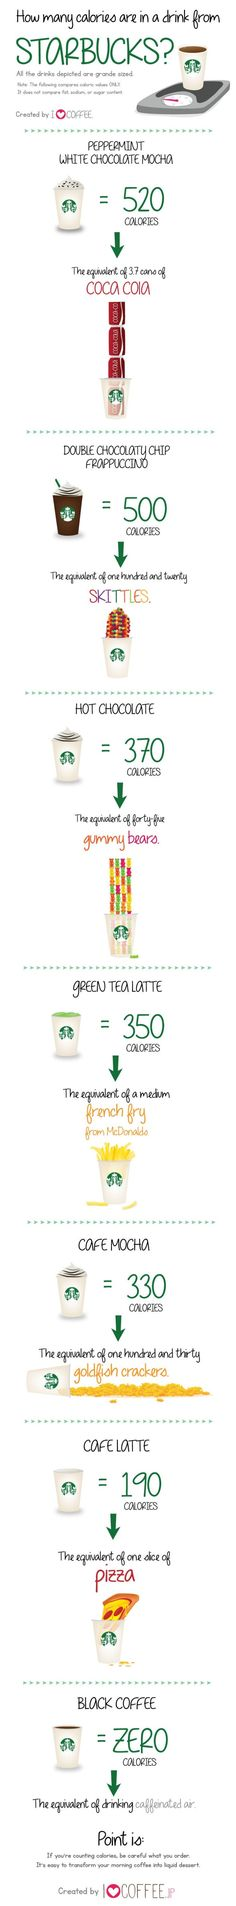 Discover the Calories From a Starbucks Drink!